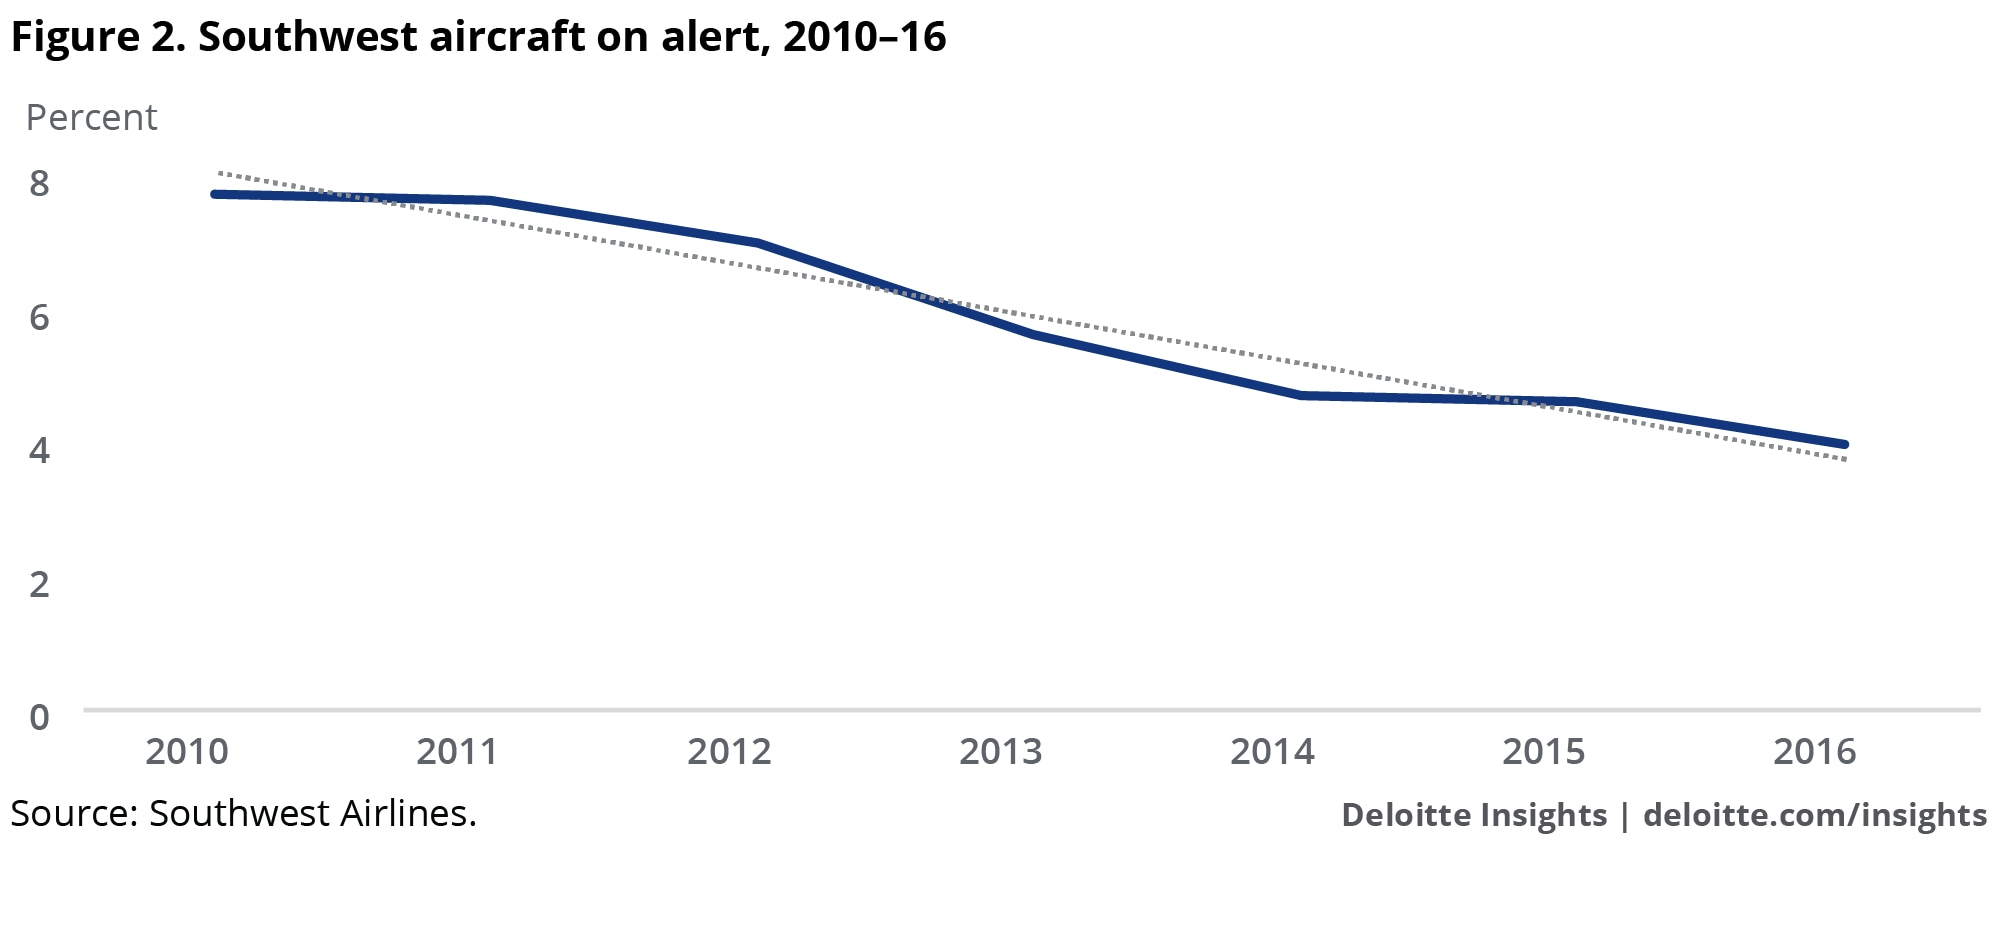 Southwest aircraft on alert, 2010-16